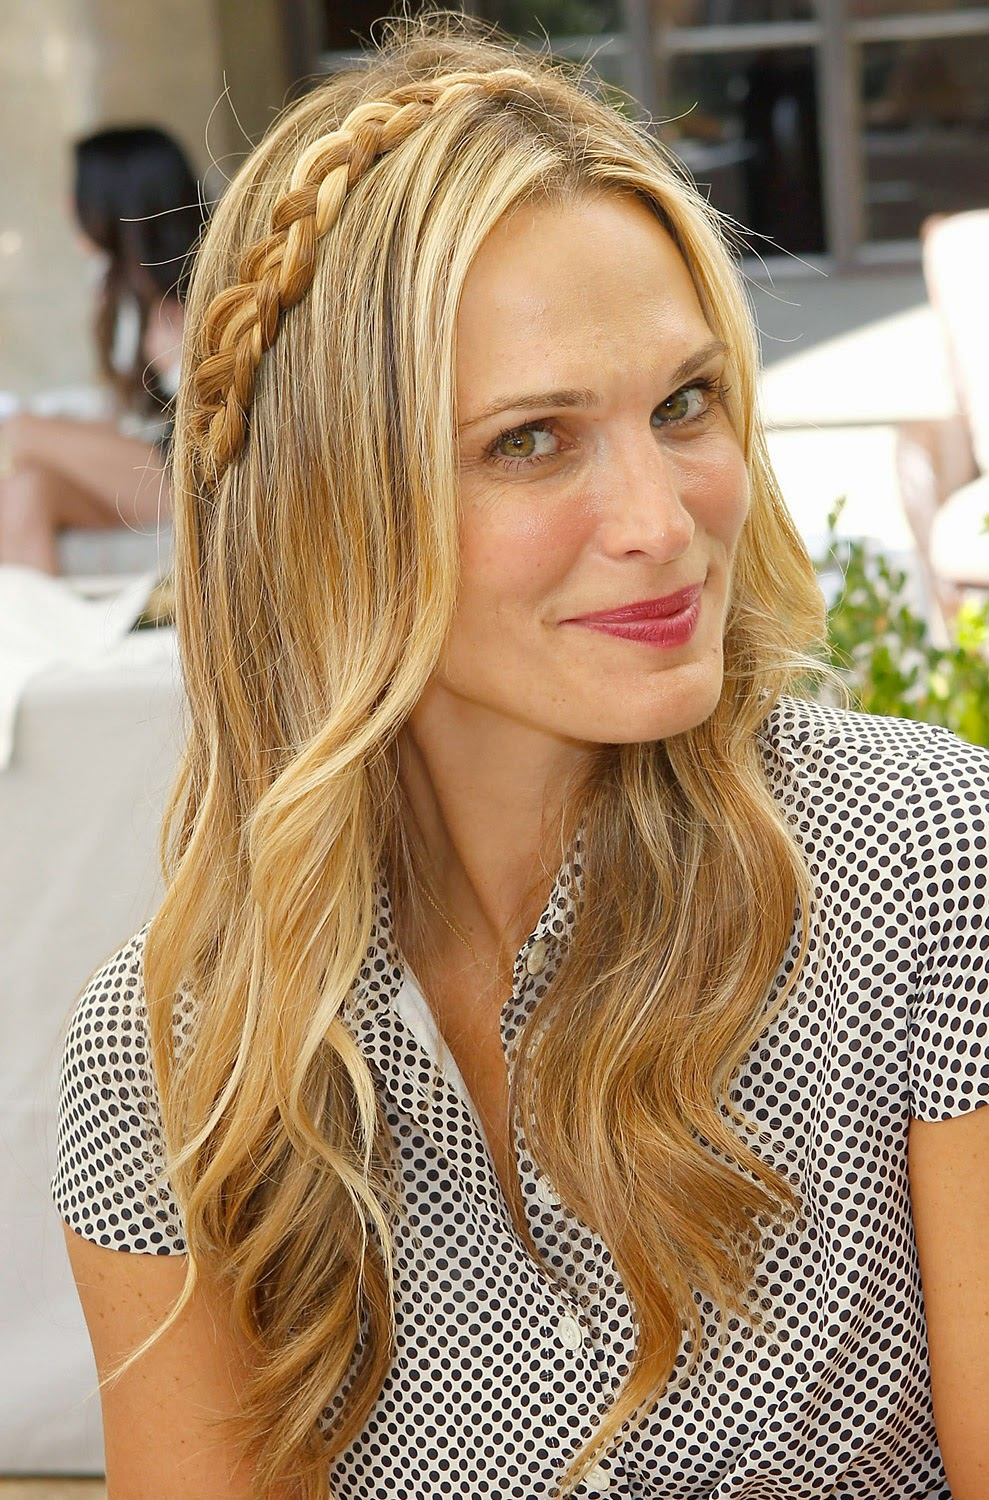 Hairstyles 2014: Great Summer Hairstyles For Women